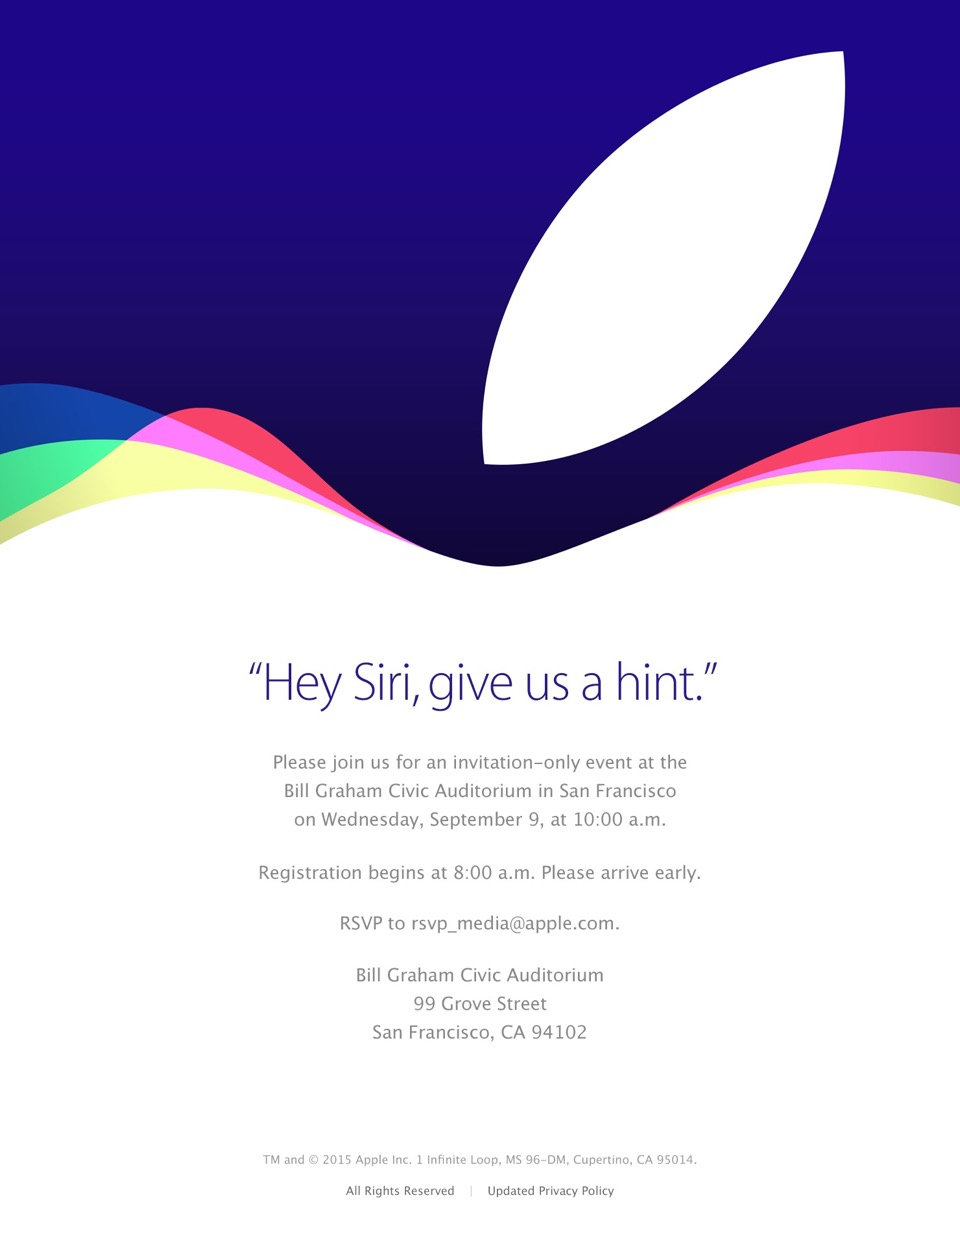 Get ready for TMO's live coverage at Apple's